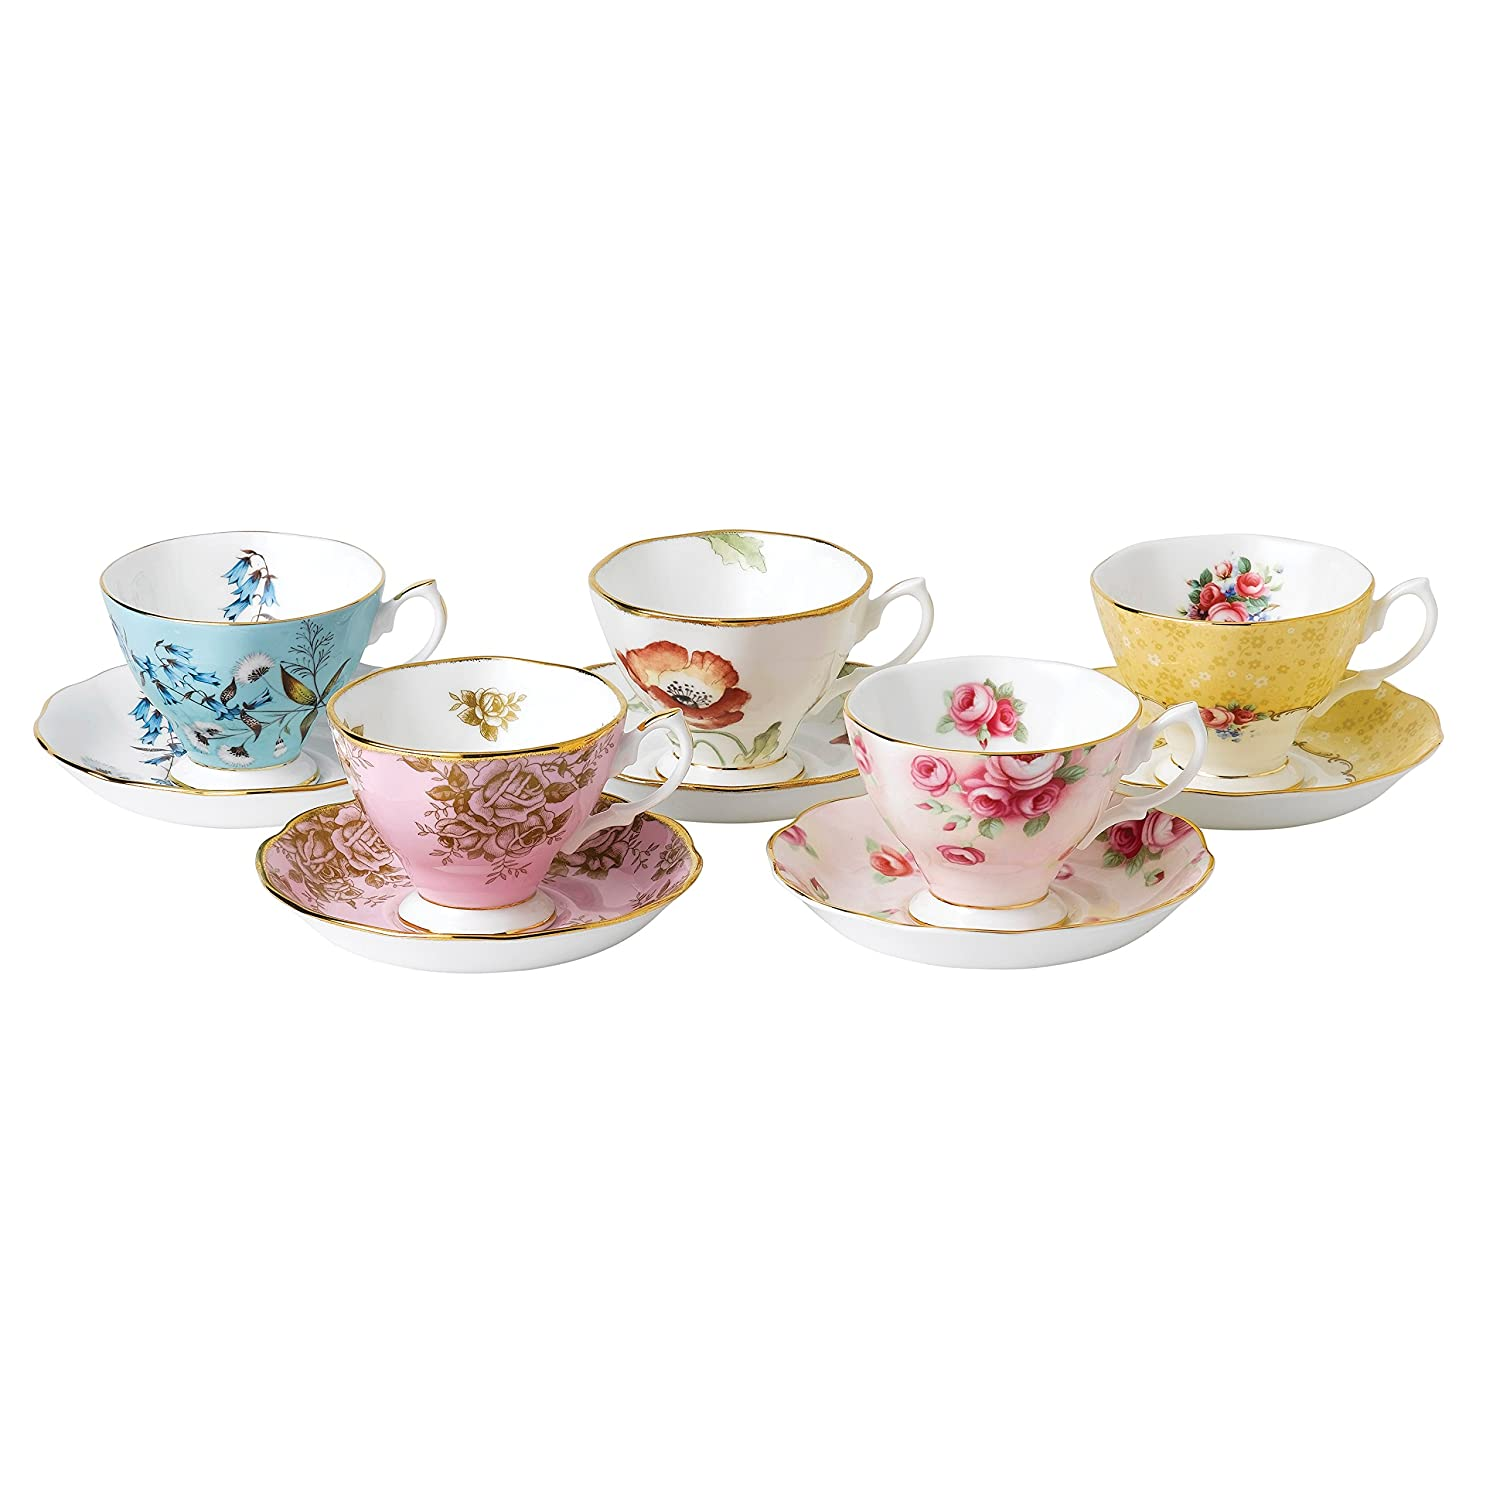 CDM product Royal Albert 40017548 100 Years 1950-1990 Teacup & Saucer Set, Multicolor, 5 Piece small thumbnail image